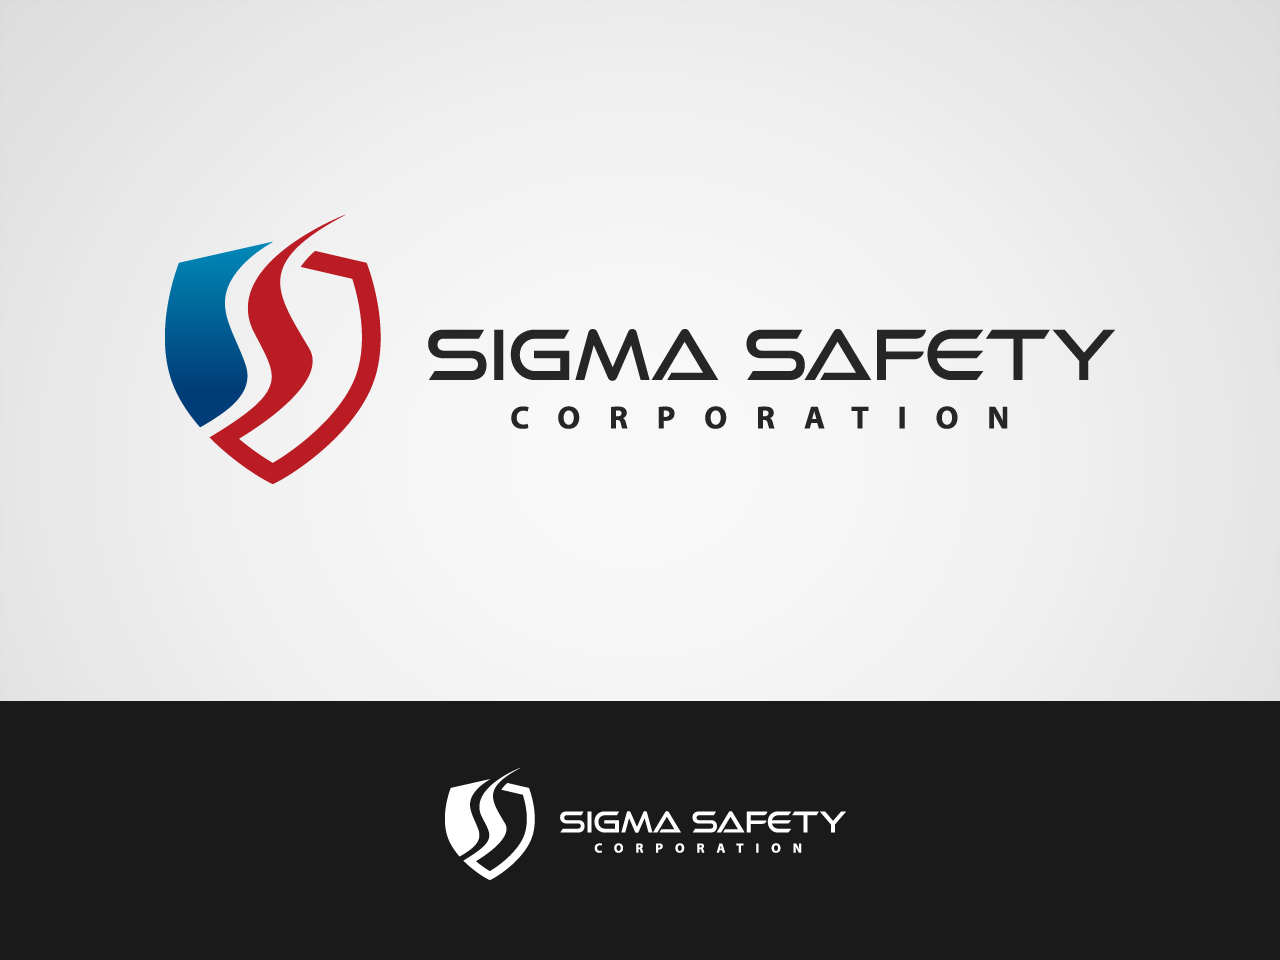 Logo Design by jpbituin - Entry No. 62 in the Logo Design Contest Creative Logo Design for Sigma Safety Corporation.